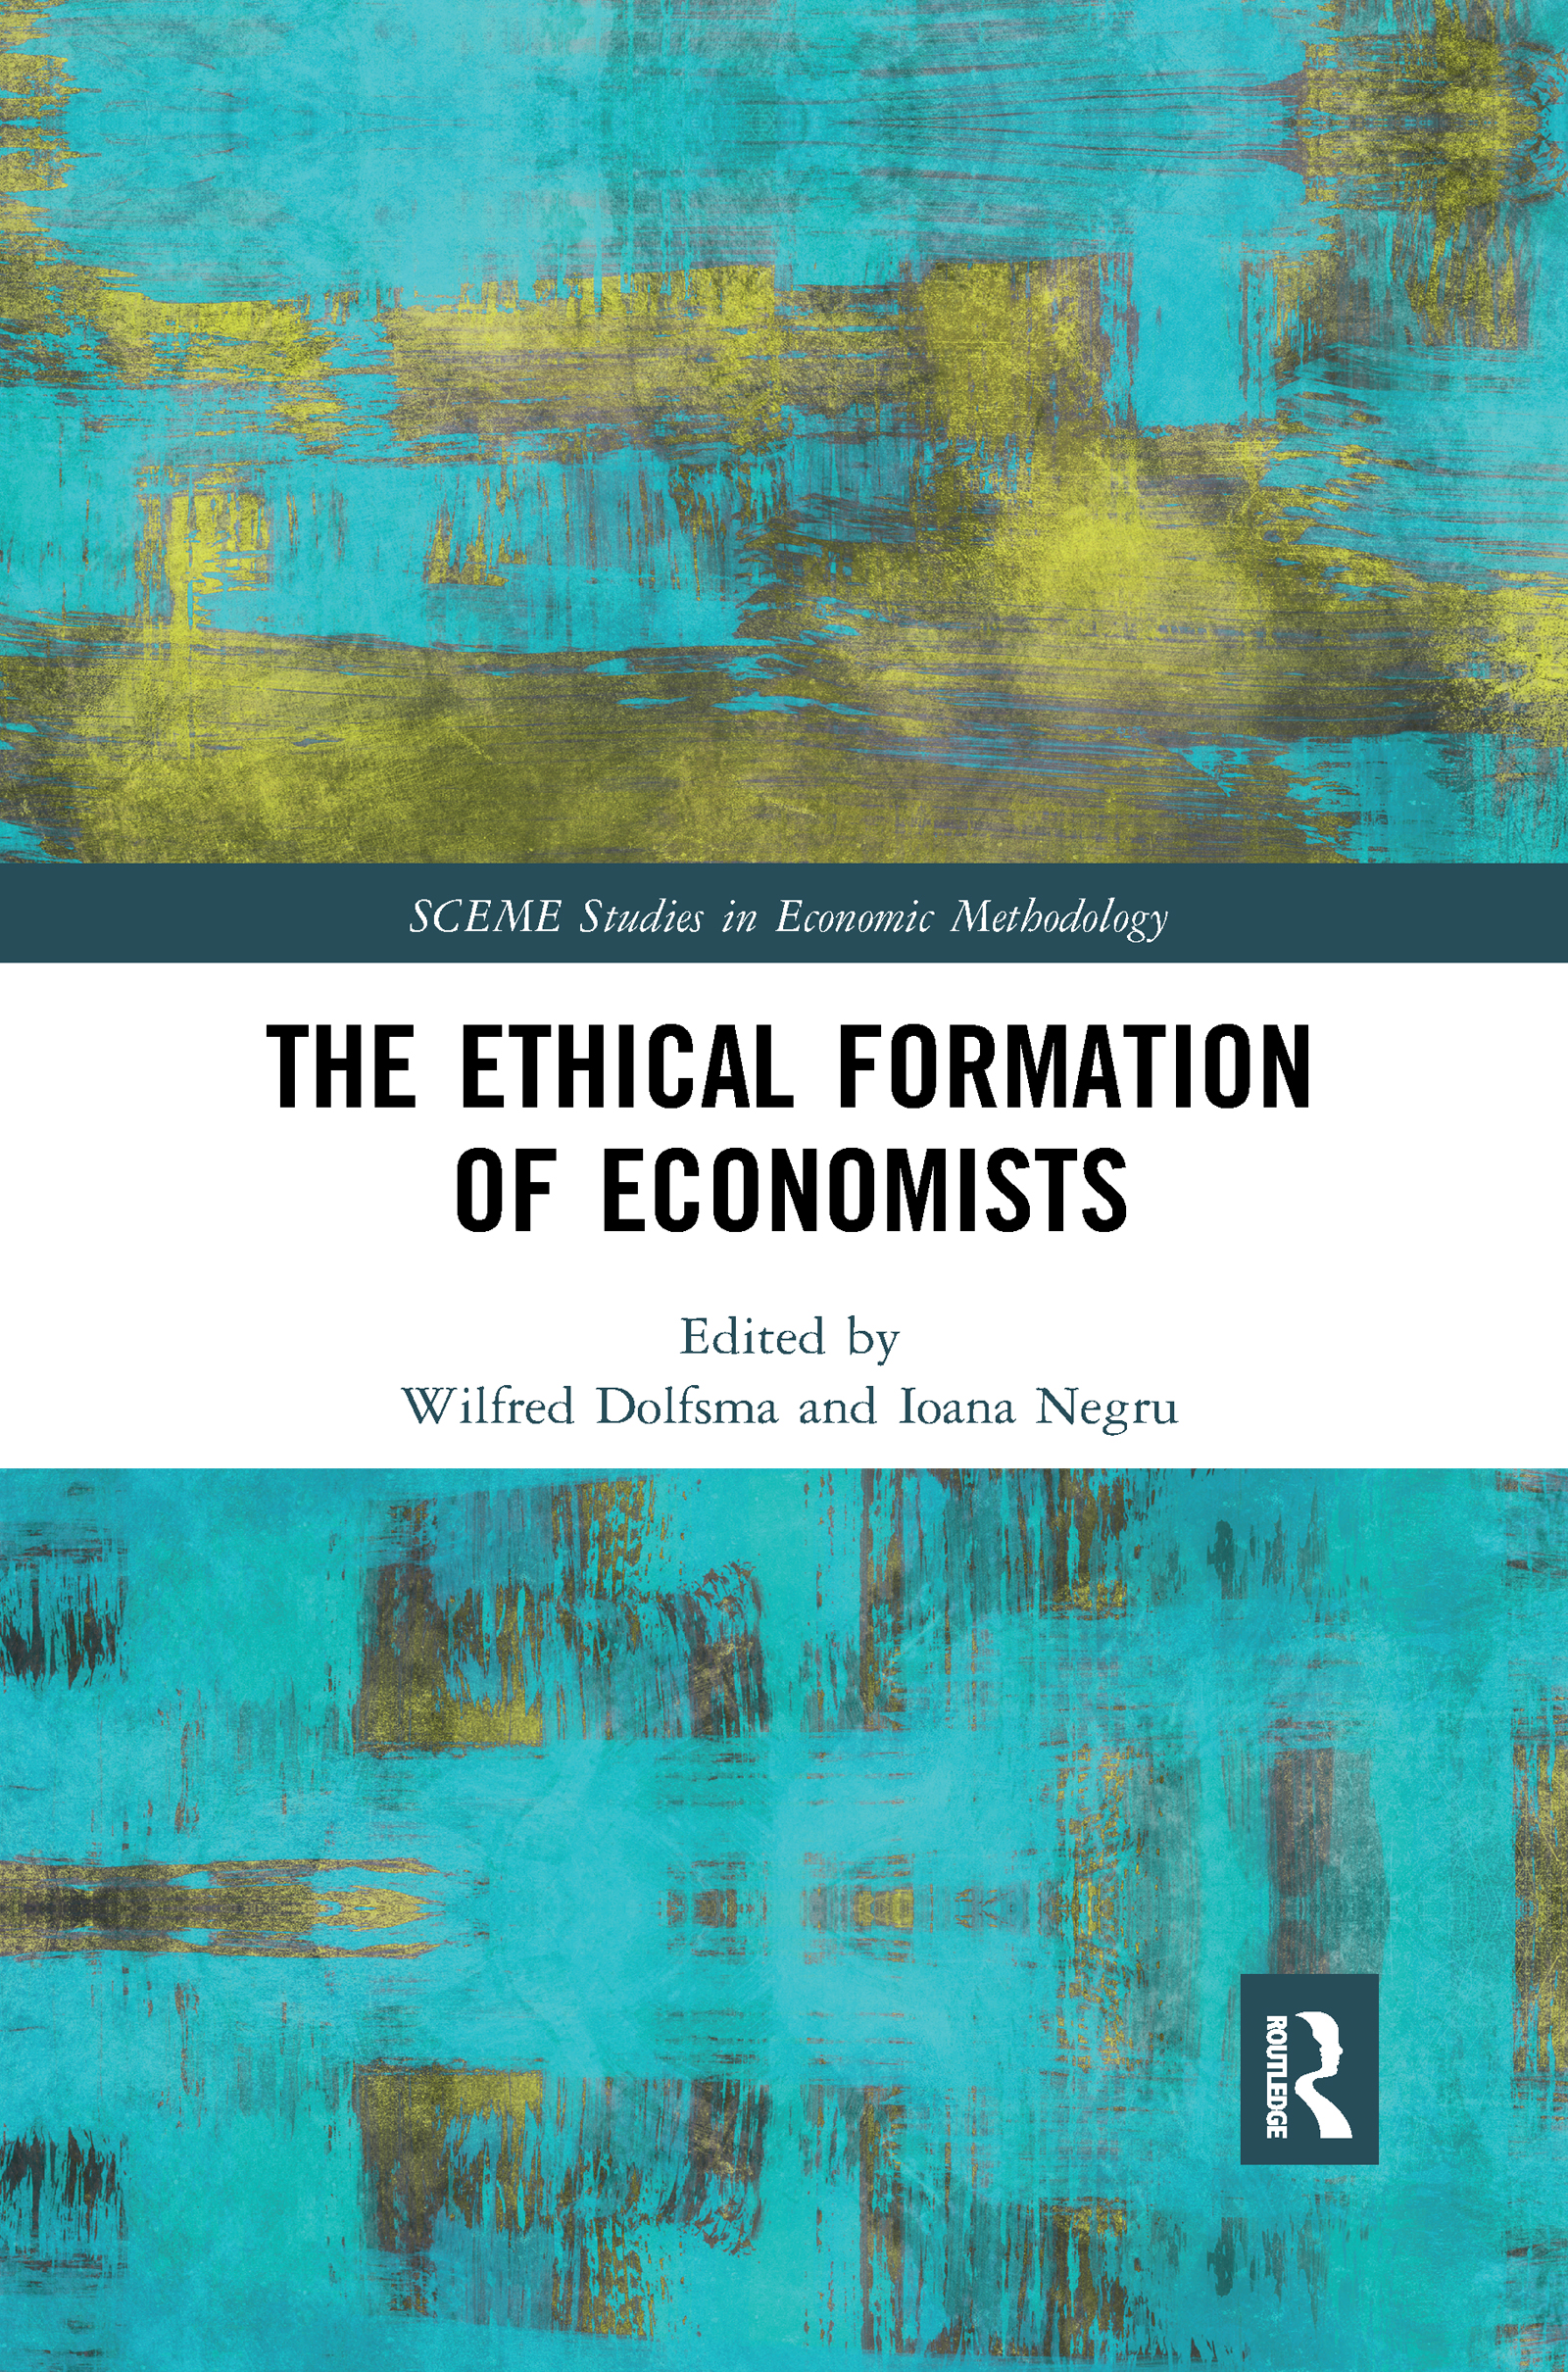 The Ethical Formation of Economists